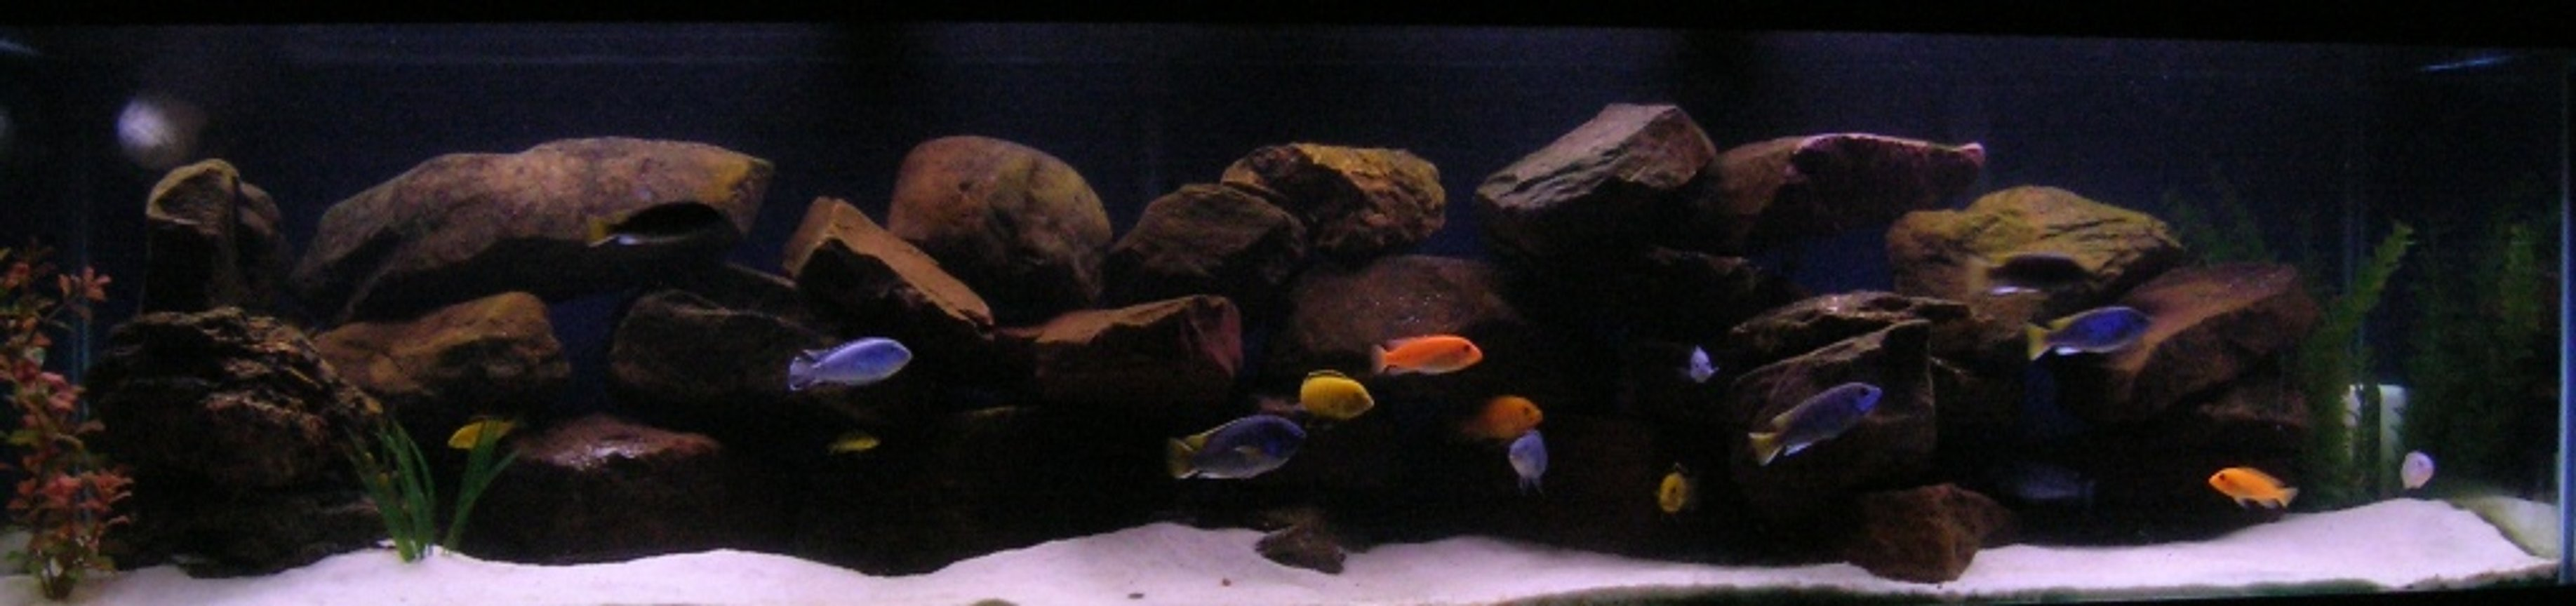 100 gallons freshwater fish tank (mostly fish and non-living decorations) - My 100g Dream Cichlid Tank